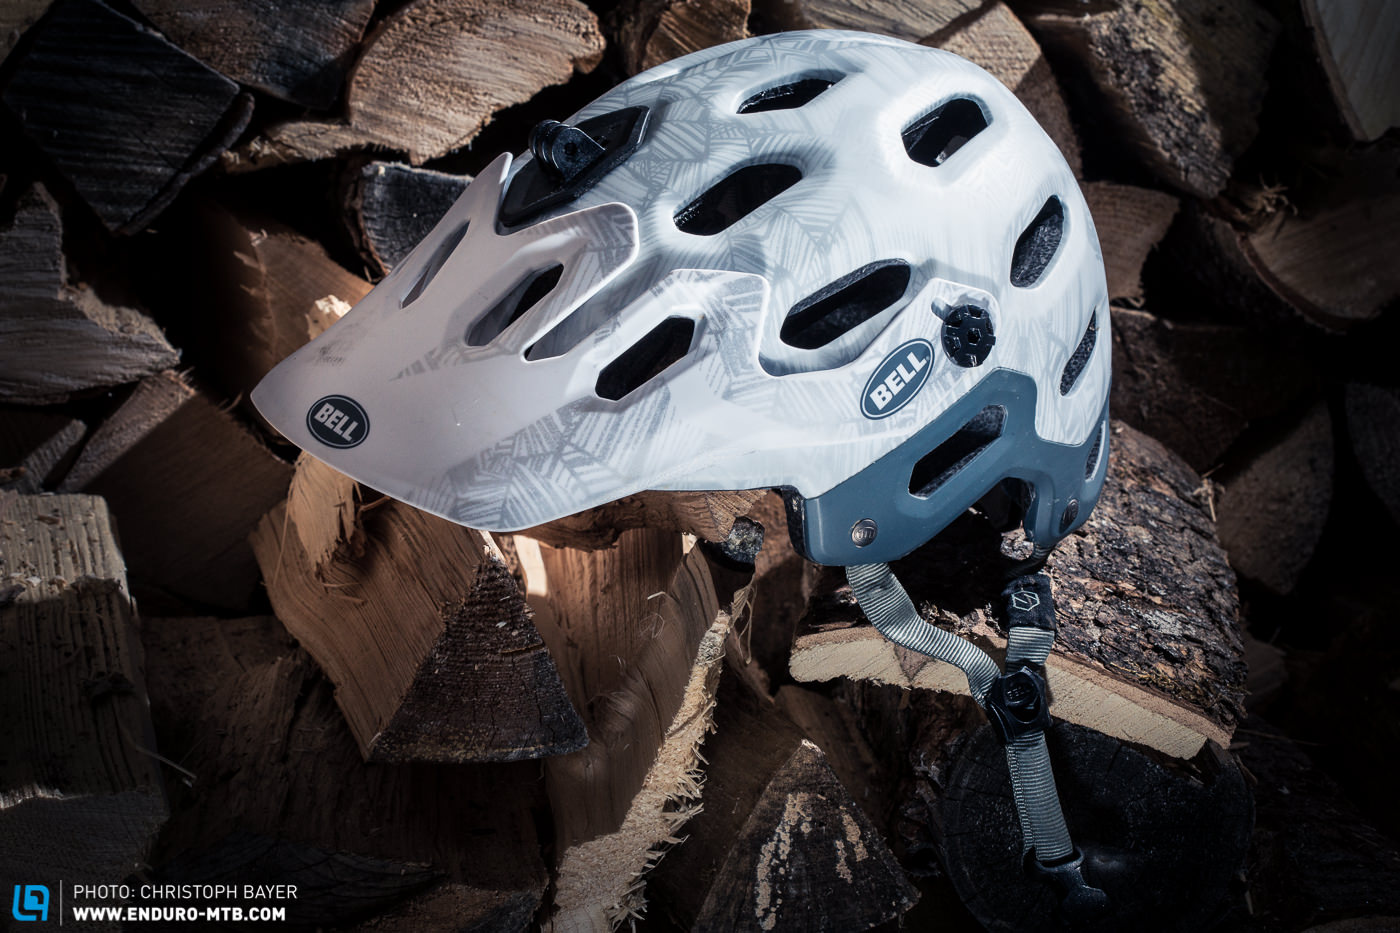 Review: Full Protection with the Bell Super Helmet